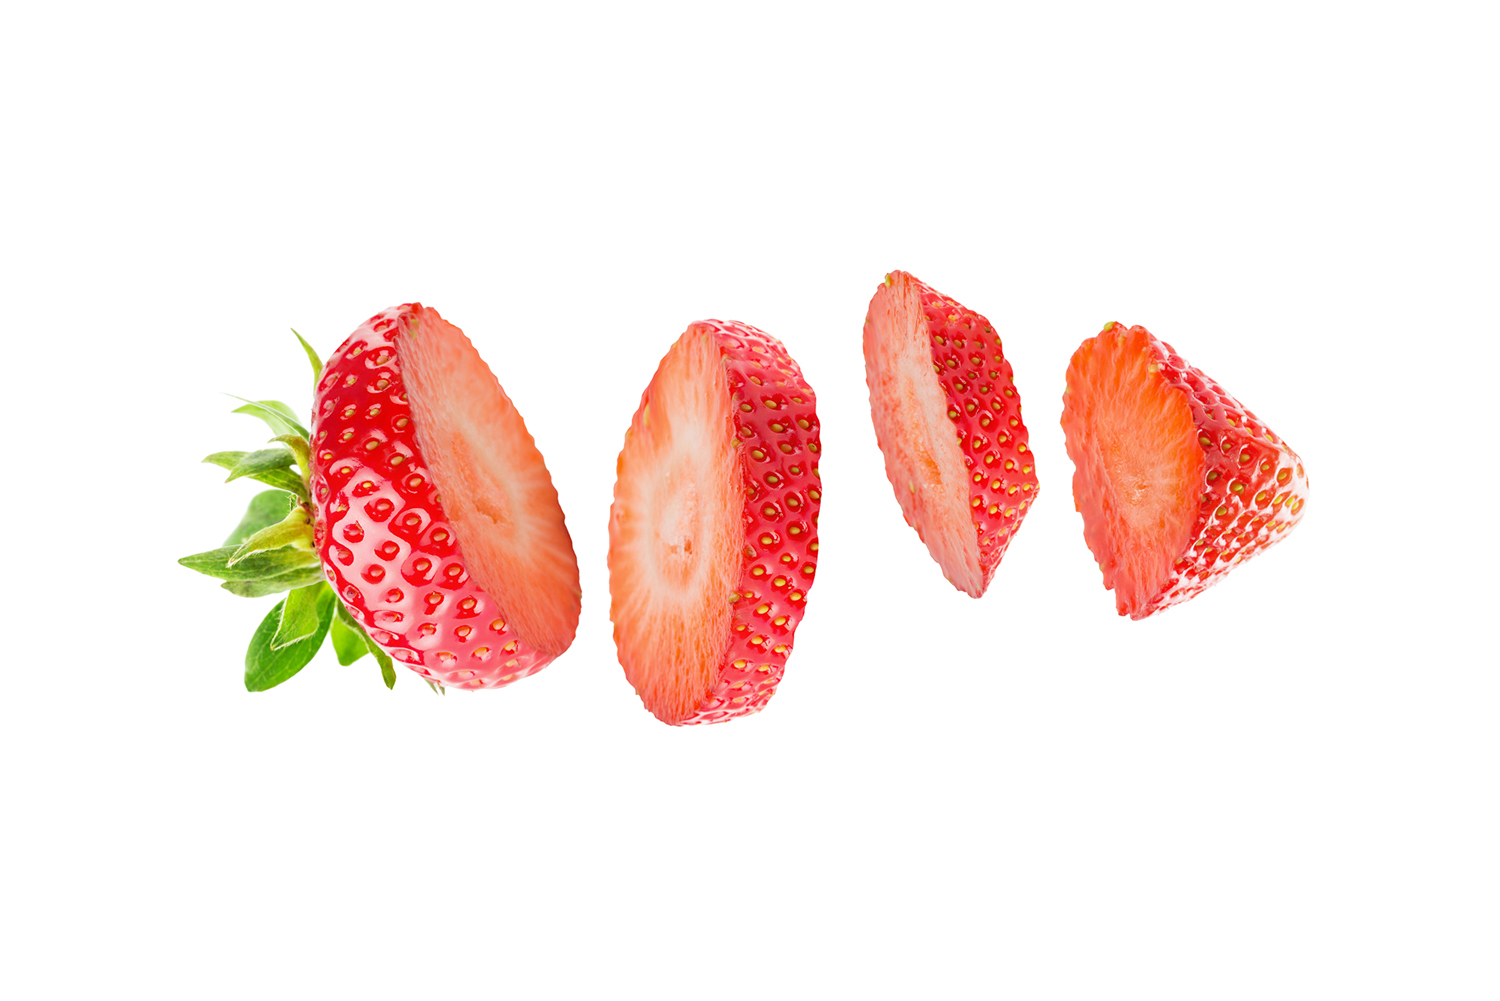 strawberry-sliced-xsm